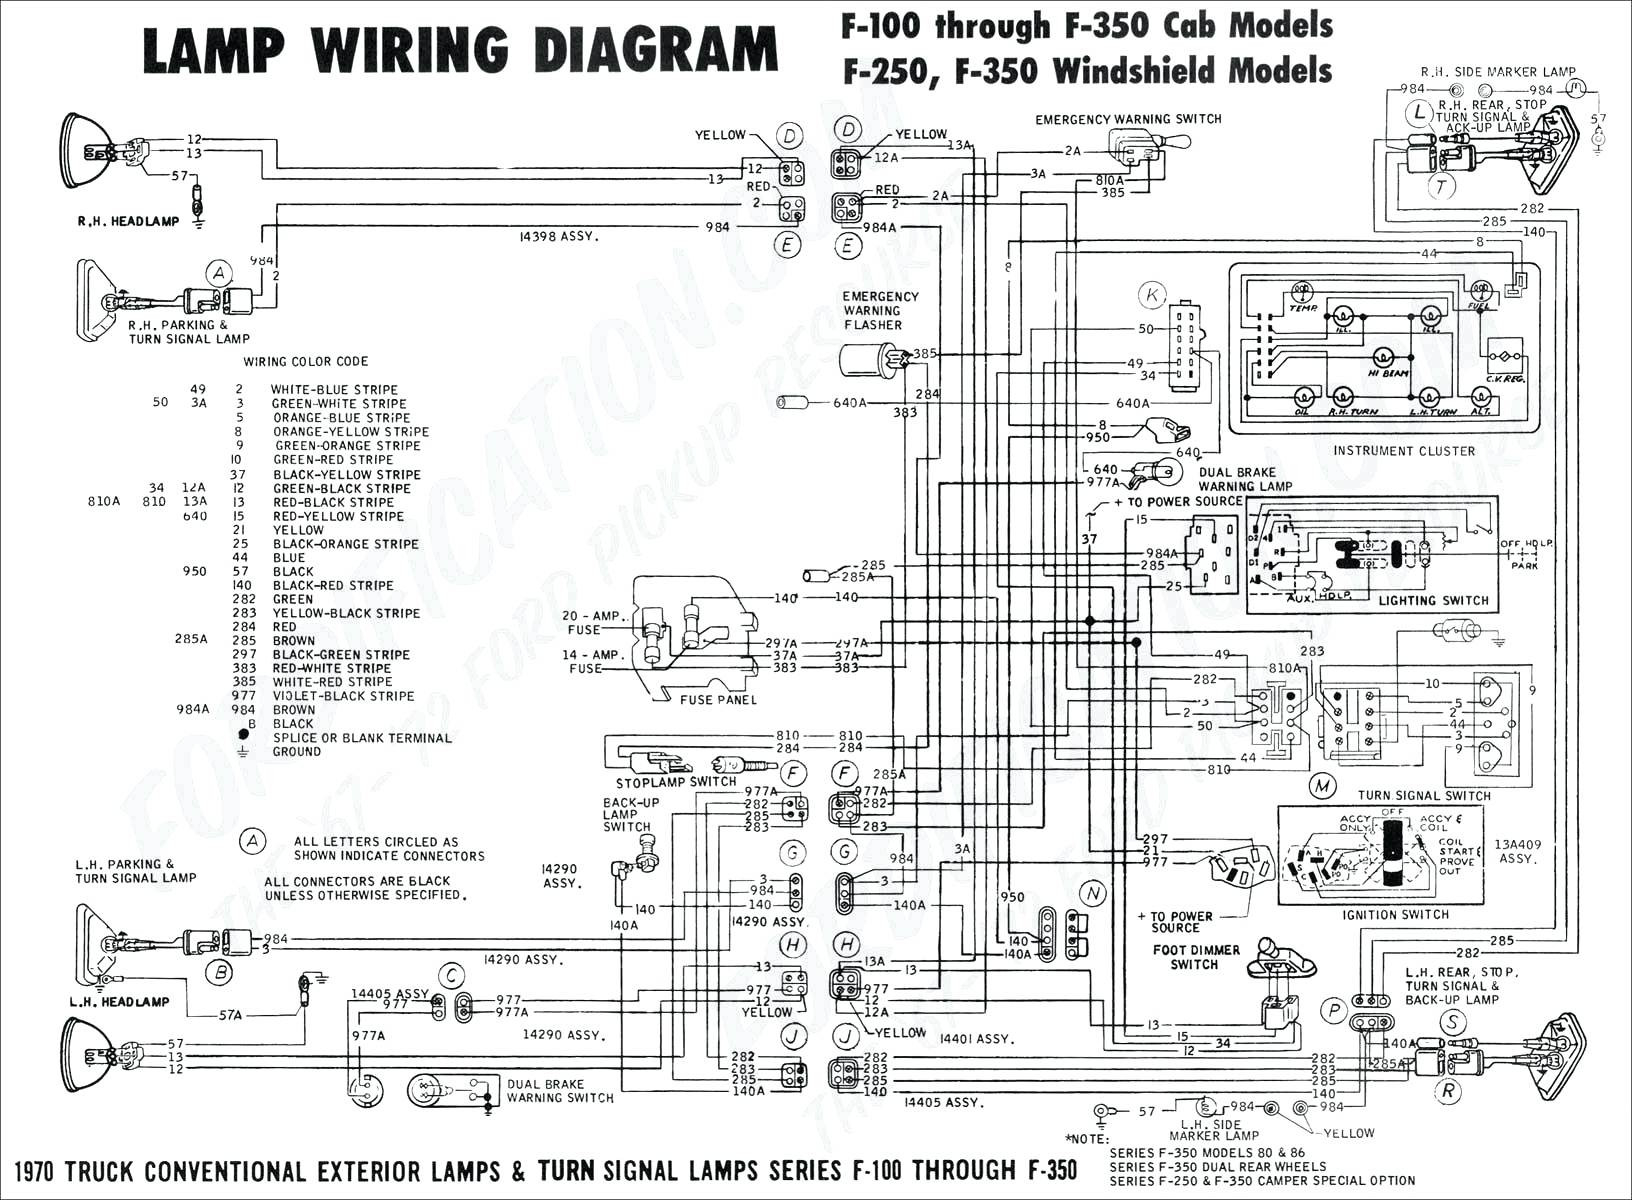 ford f250 wiring diagram for trailer lights Collection-Wiring Diagram Trailer Lights Ireland Valid ford F250 Wiring Diagram for Trailer Lights Copy Pioneer Fh 11-p